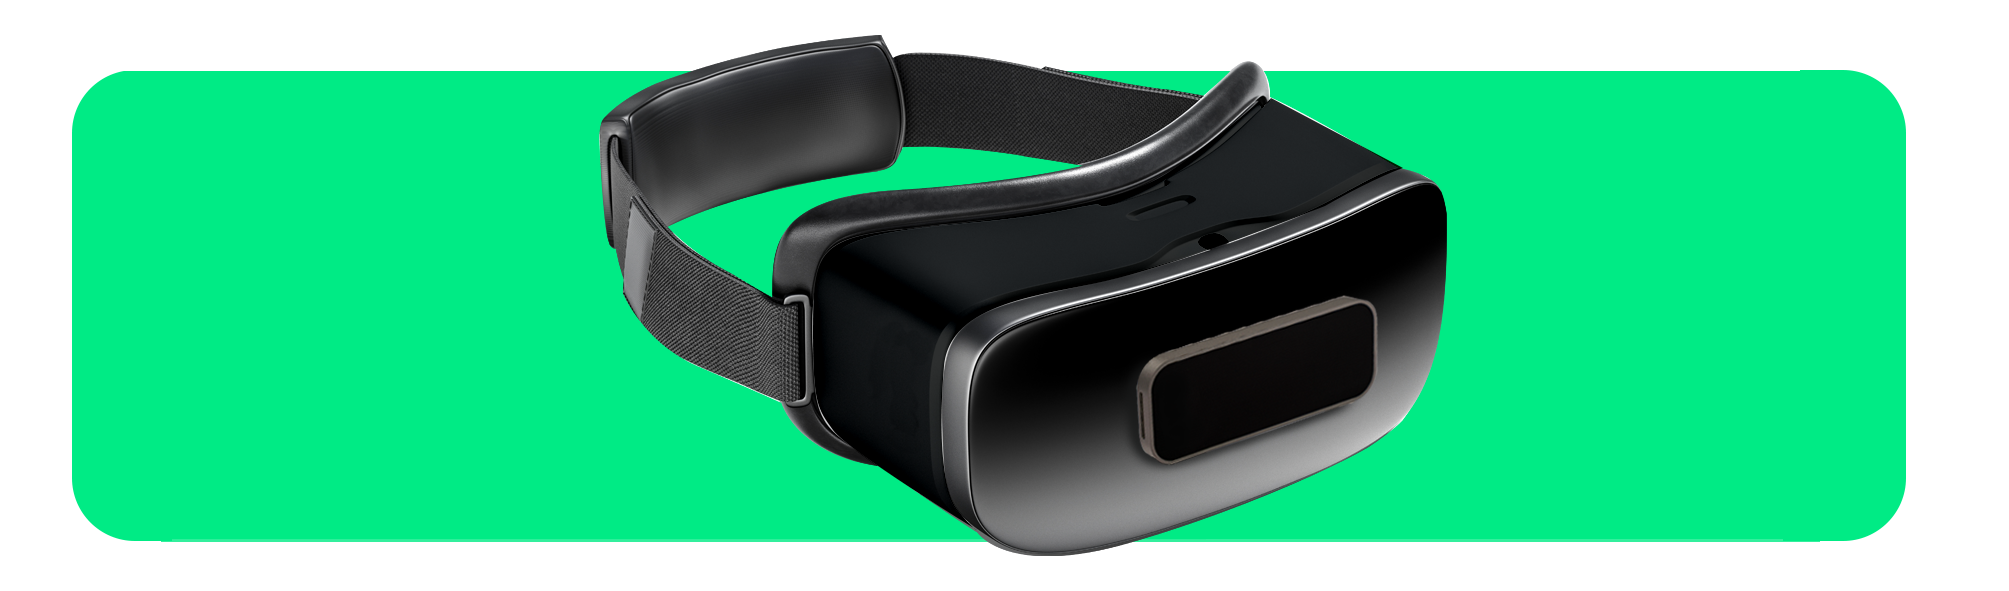 VR headset with Leap Motion Controller